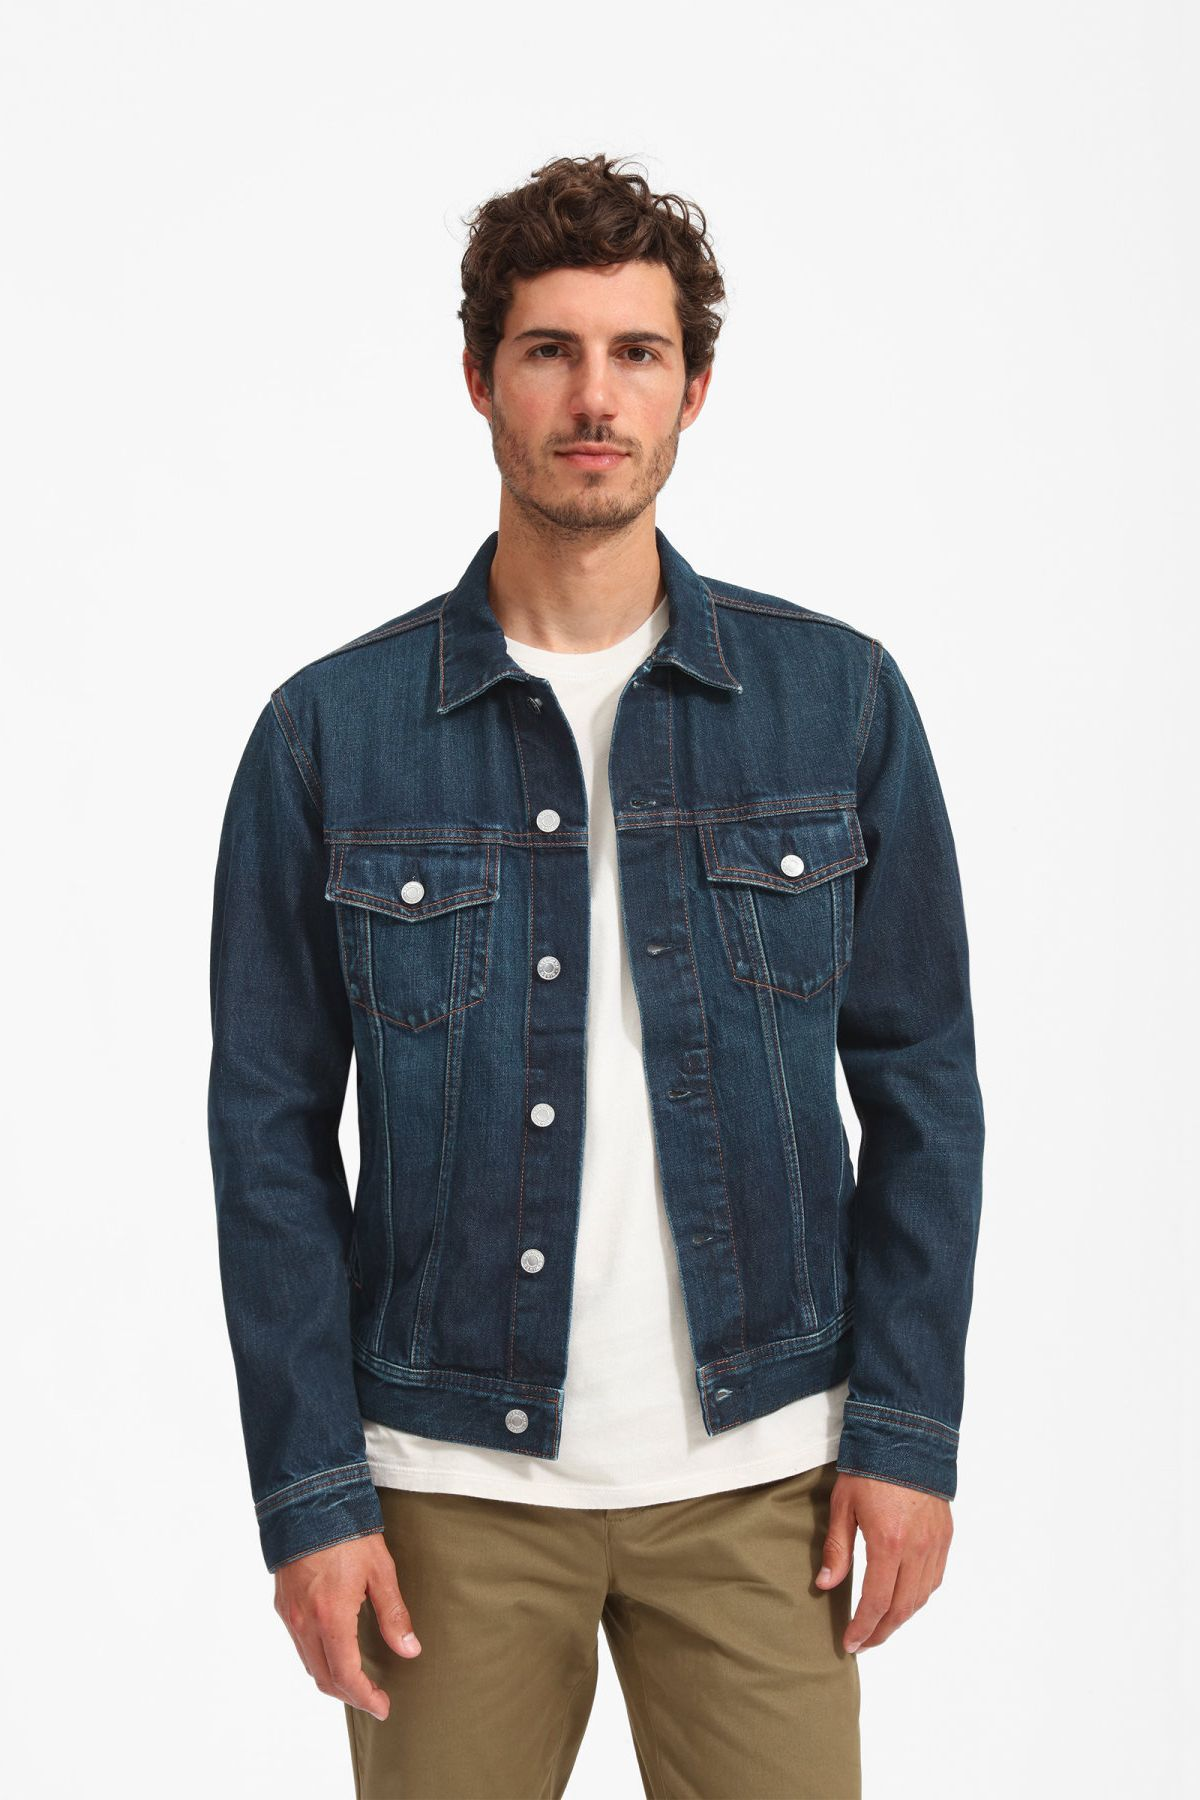 The Denim Jacket By Everlane In Vintage Dark Blue Wash An Iconic Layer To Live In Yea Dark Blue Denim Jacket Blue Denim Jacket Outfit Denim Jacket Men Outfit [ 1800 x 1200 Pixel ]